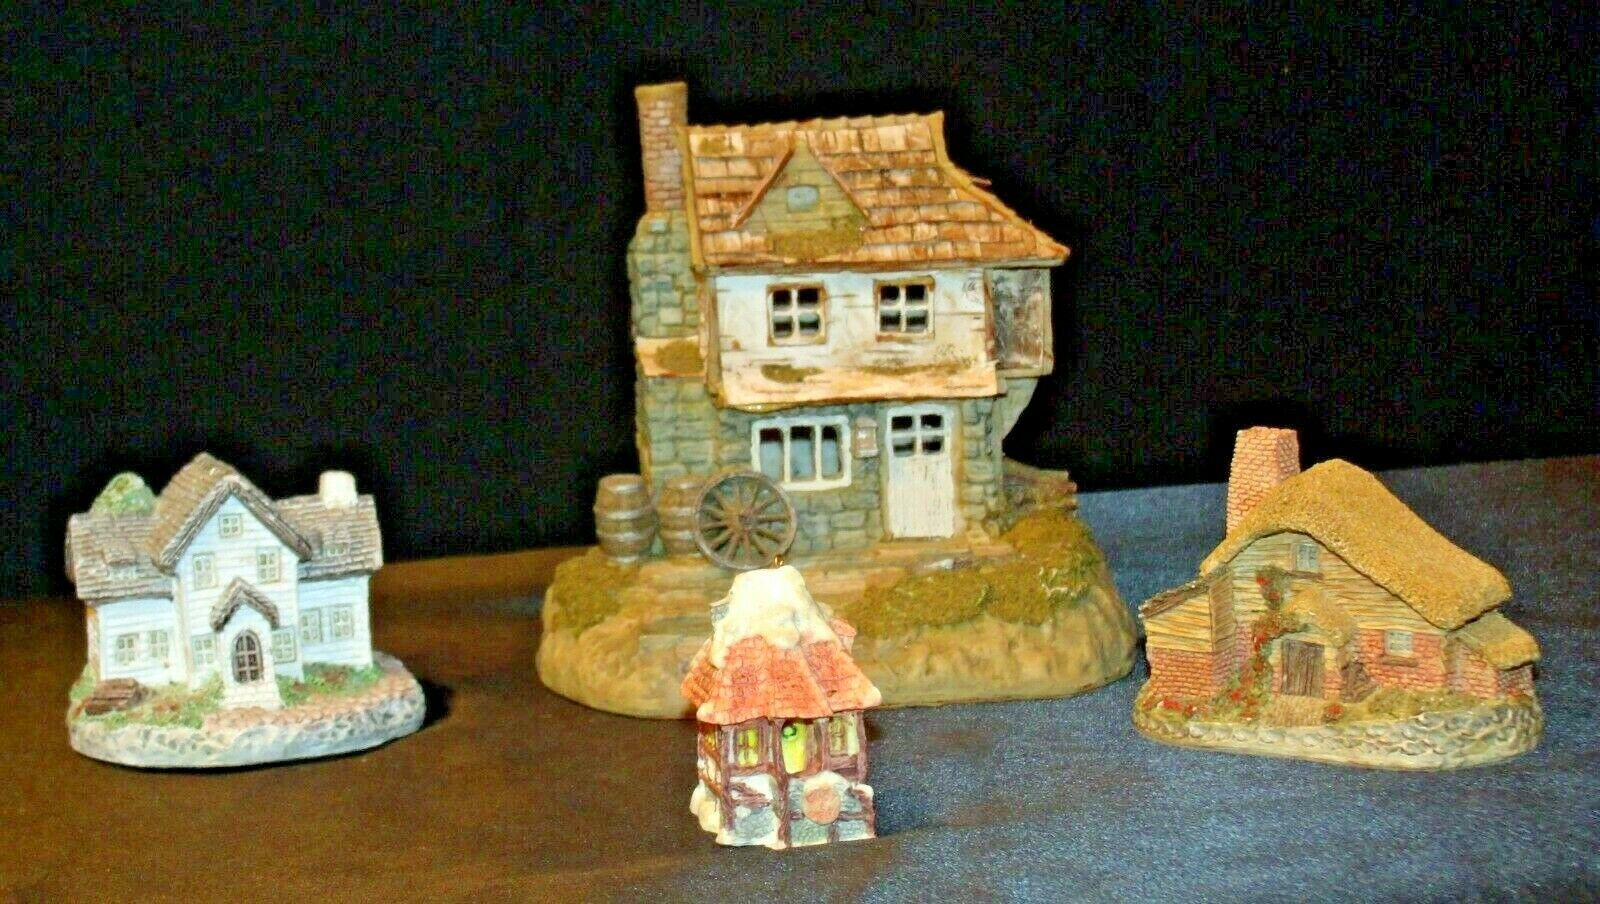 Cottages Holiday Decor Pieces (4) AB 630 Collectible Vintage